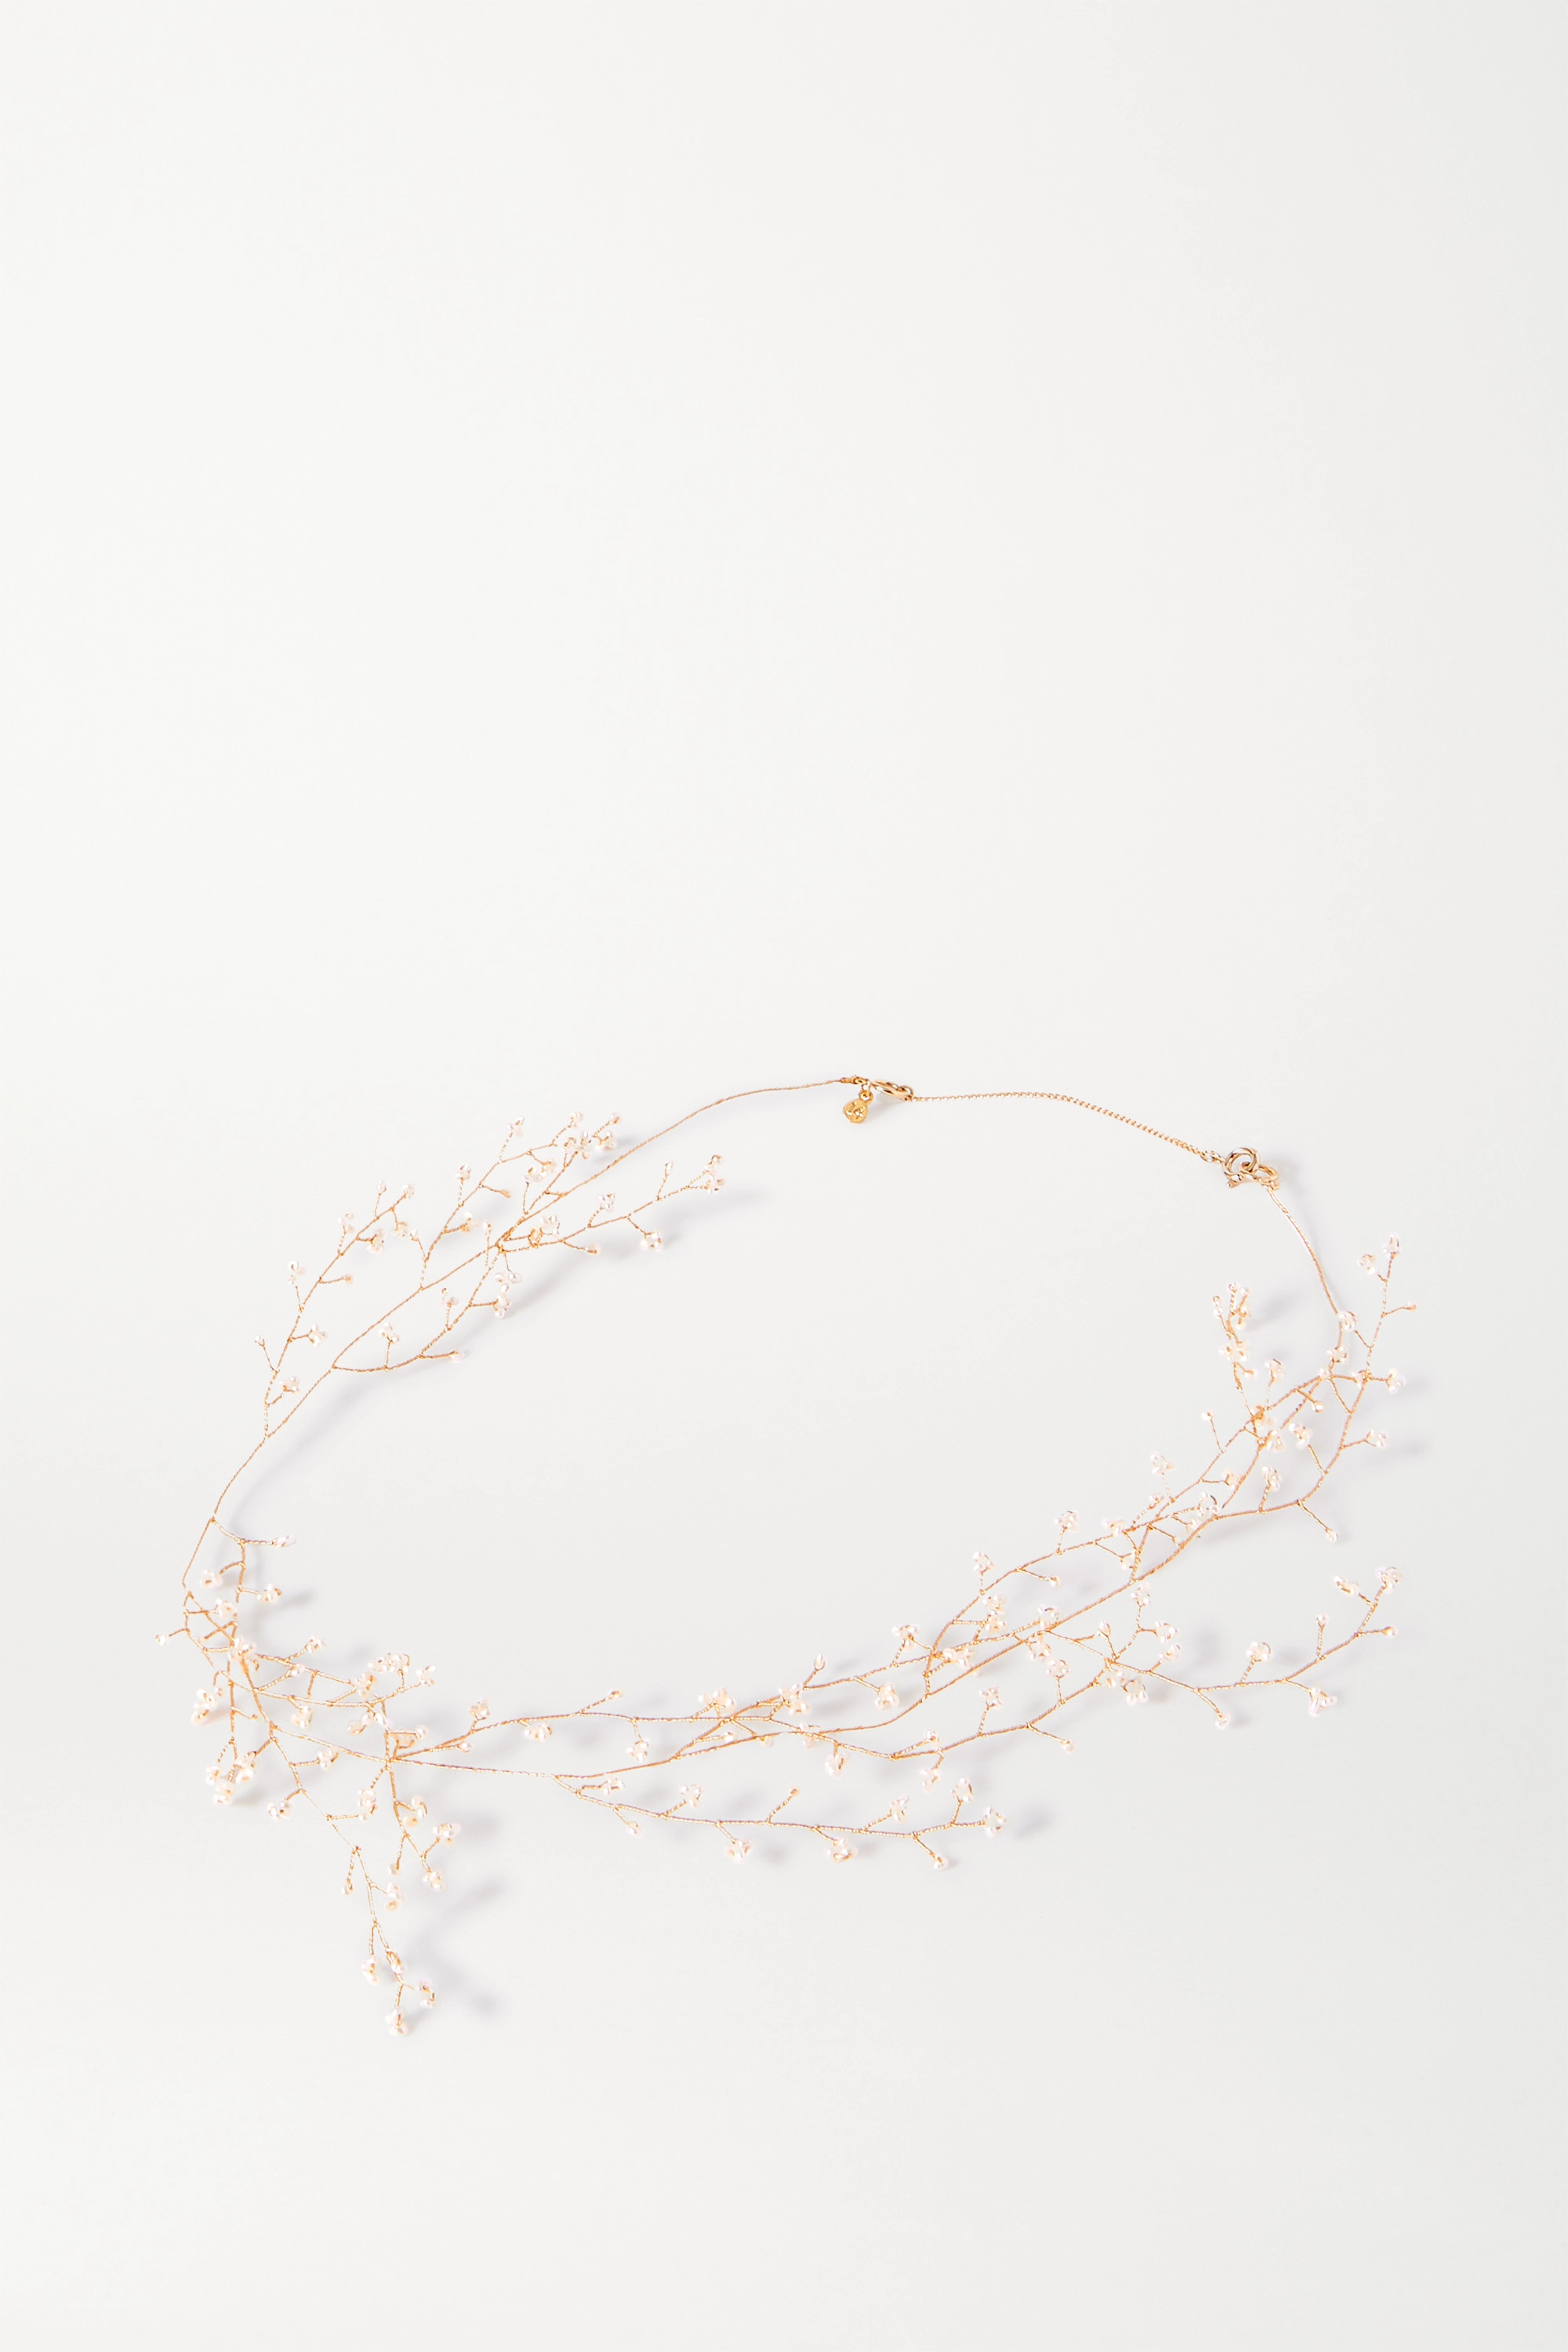 White Baby's Breath Gold-plated Pearl Necklace | 14 / Quatorze